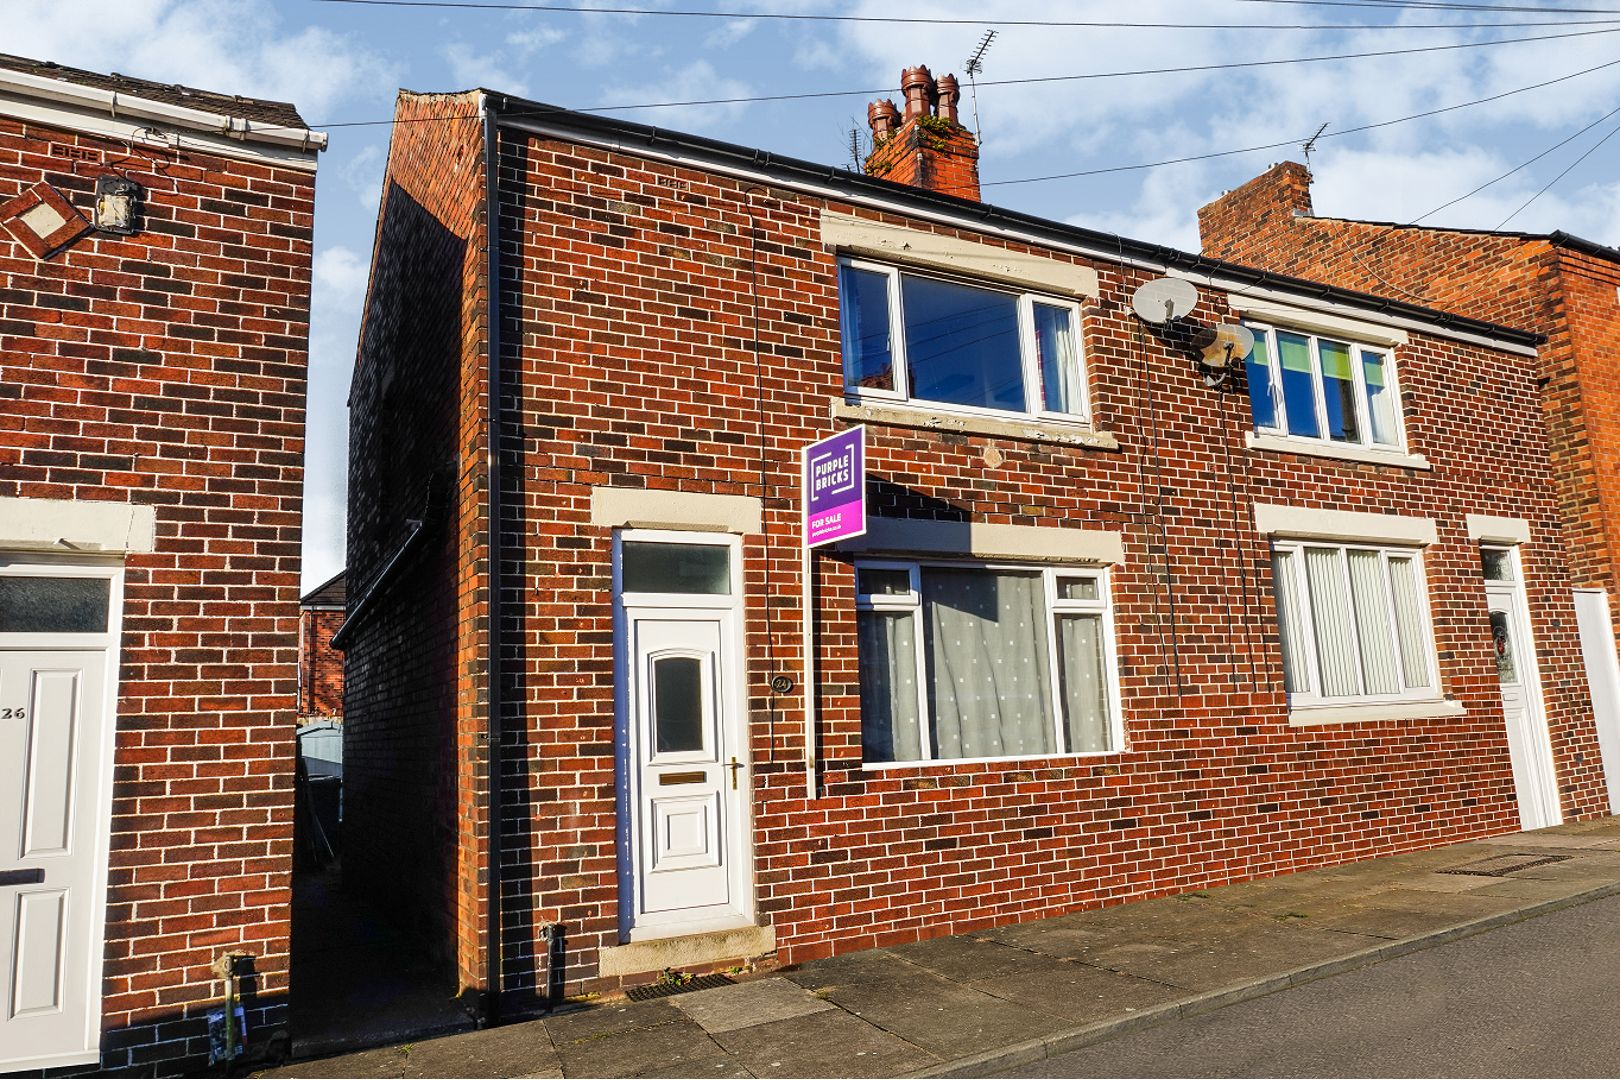 Purplebricks - Best Online Estate Agents. Free Valuations. Local Experts.